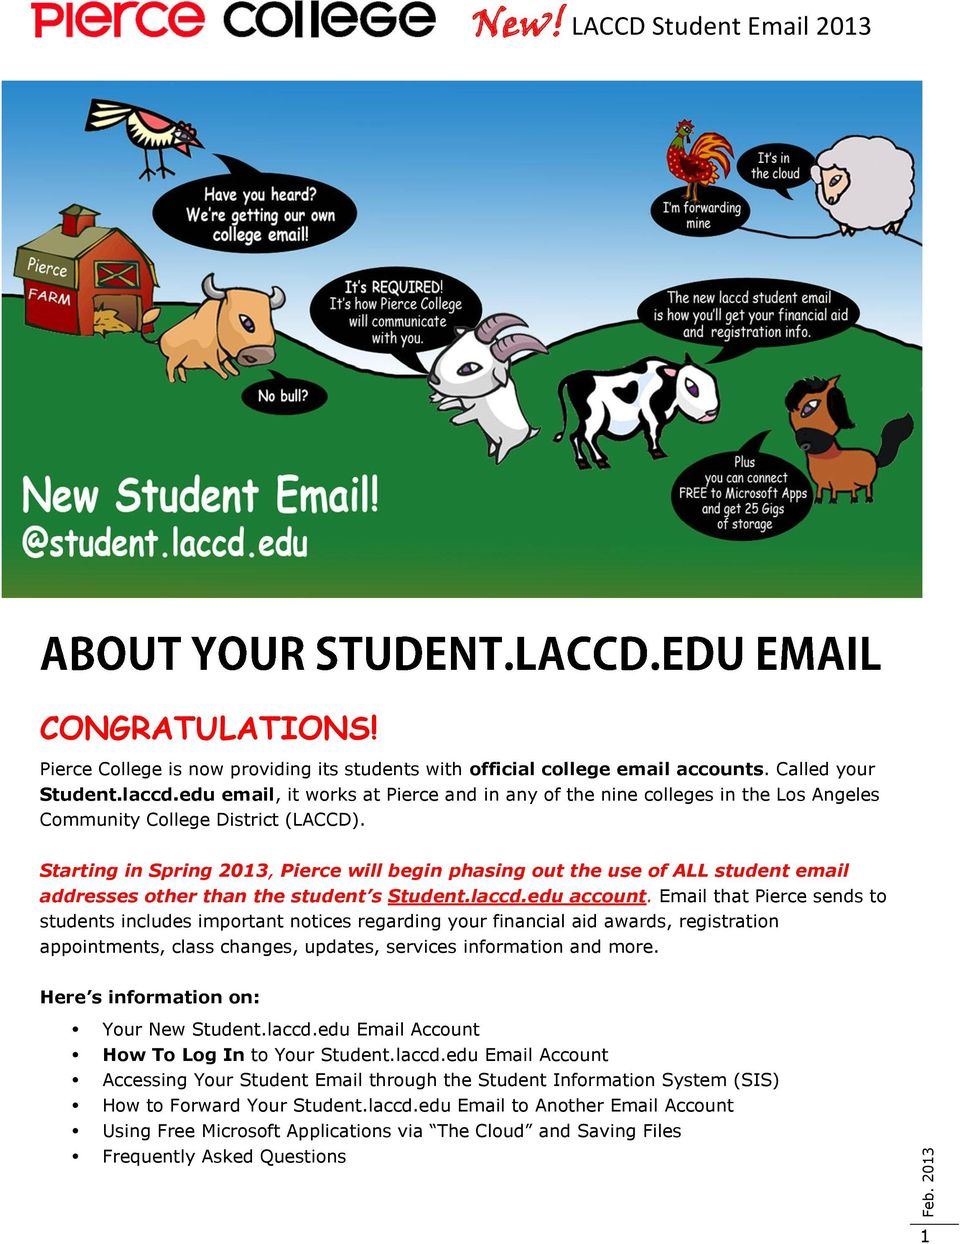 Starting in Spring 2013, Pierce will begin phasing out the use of ALL student email addresses other than the student s Student.laccd.edu account.